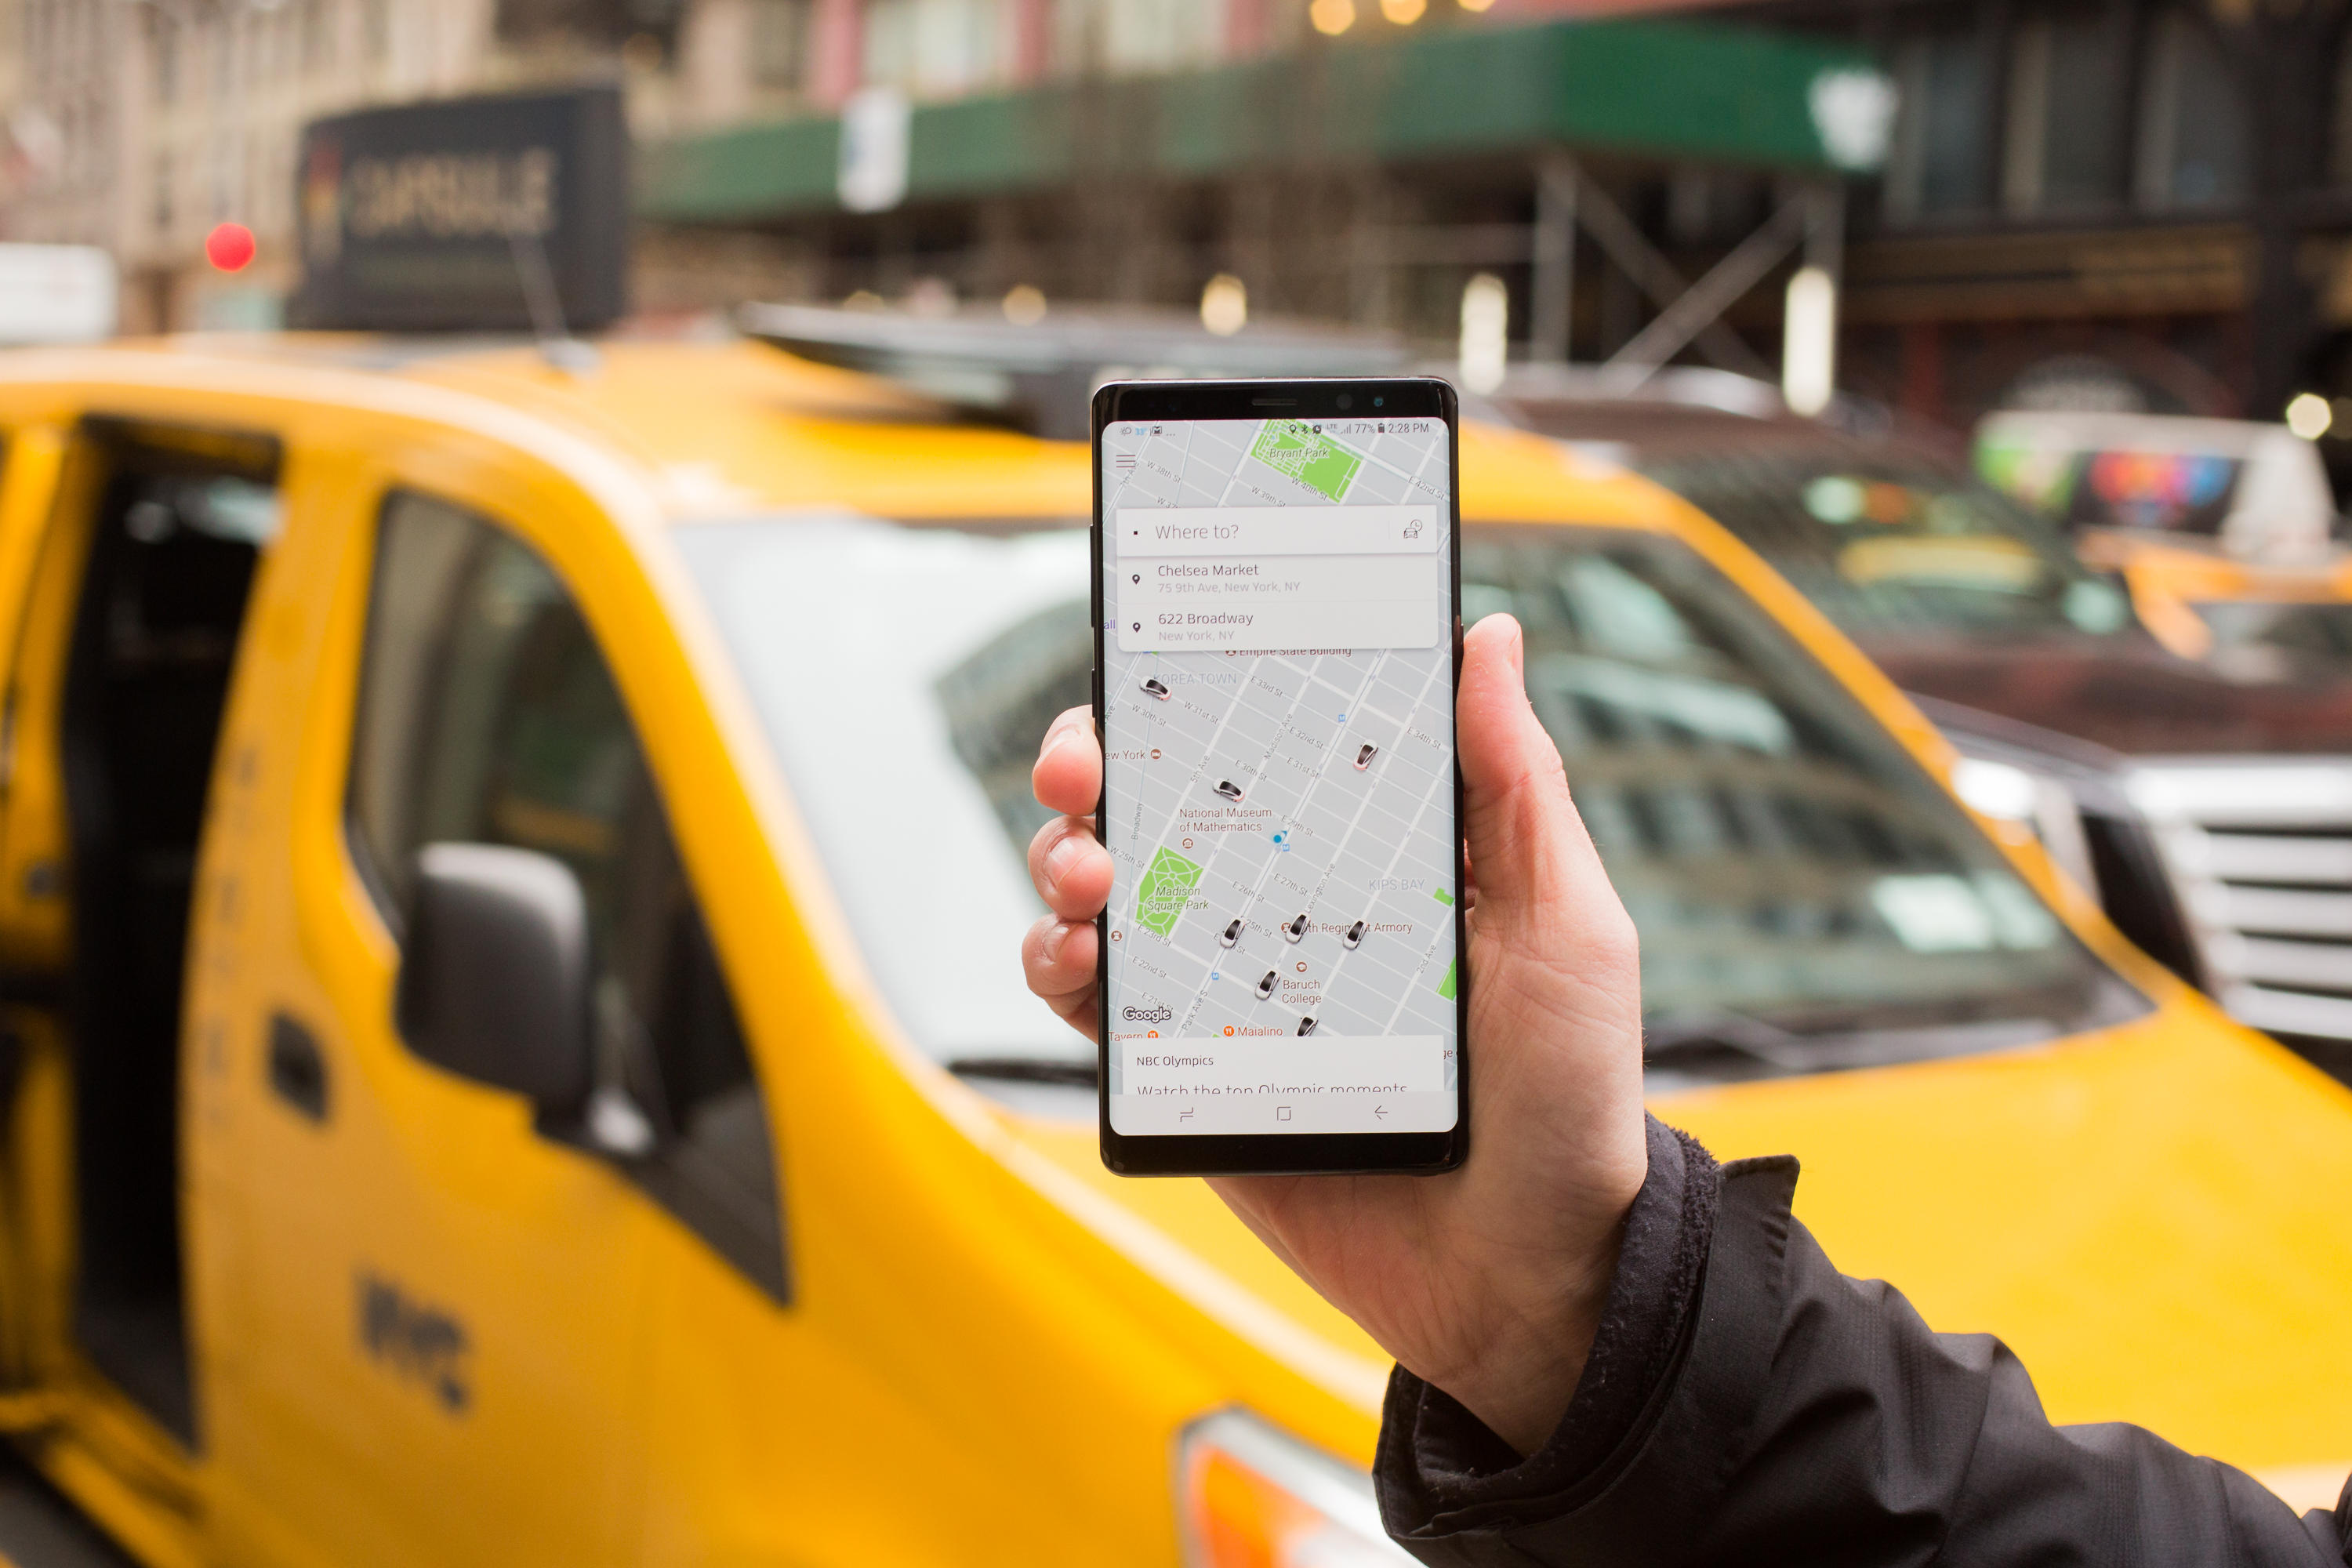 02-uber-android-2018-photos-cnet